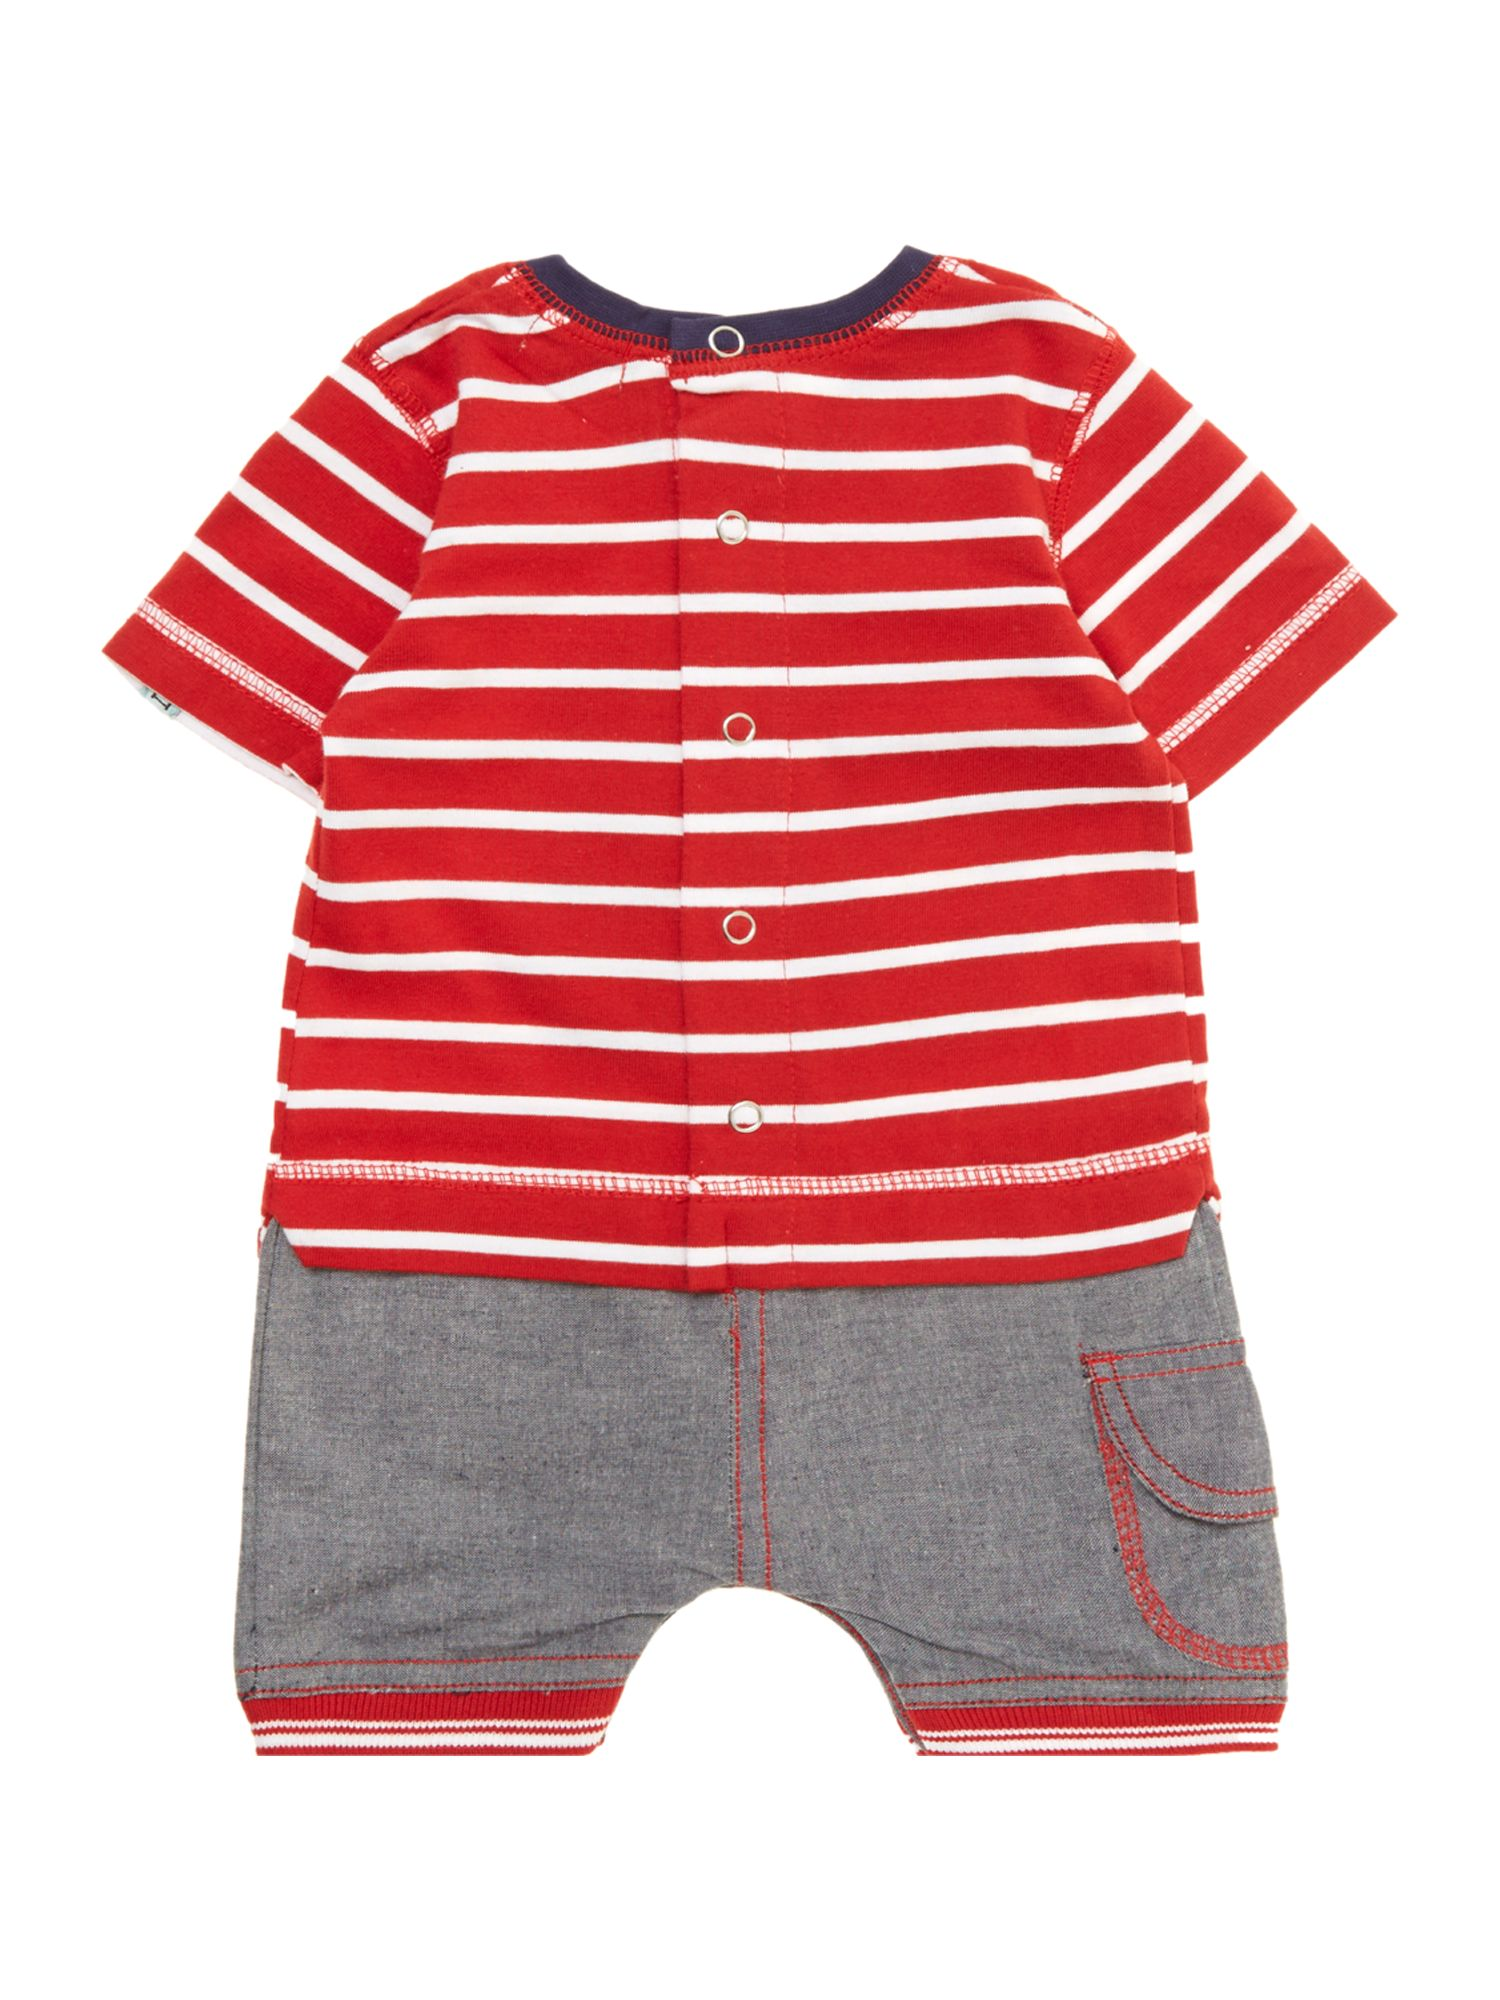 Baby boy whale mock-shorts set